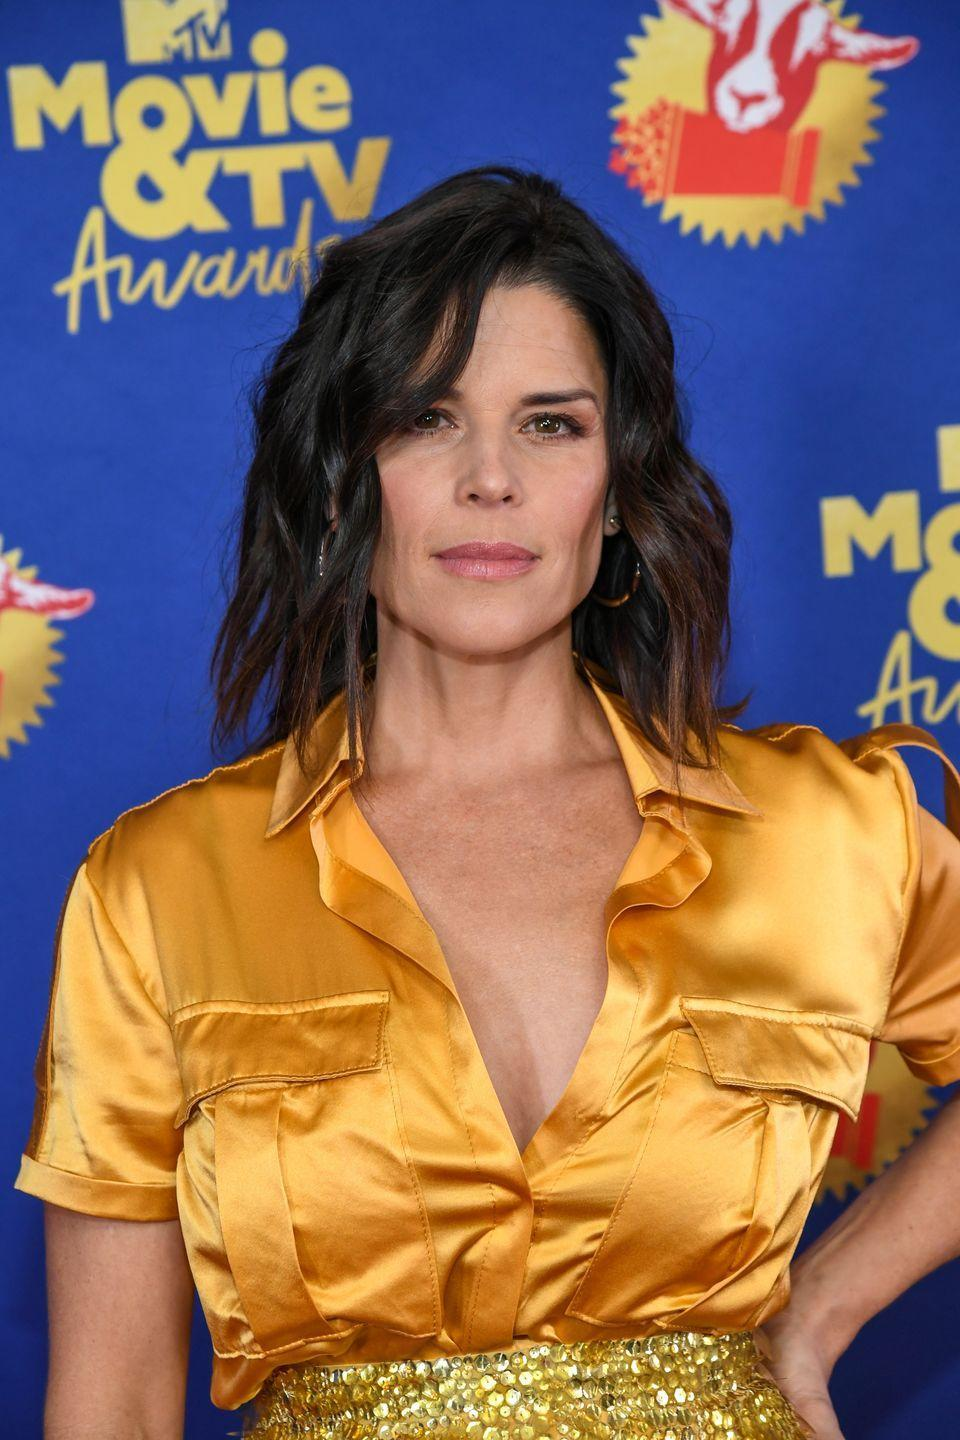 <p>In 2021, Campbell has become a TV guest star staple, recently starred in the film <em>Clouds</em>, as well as the TV series <em>House of Cards</em>, and is set to reprise her role as the unkillable Sidney Prescott in 2022.</p>